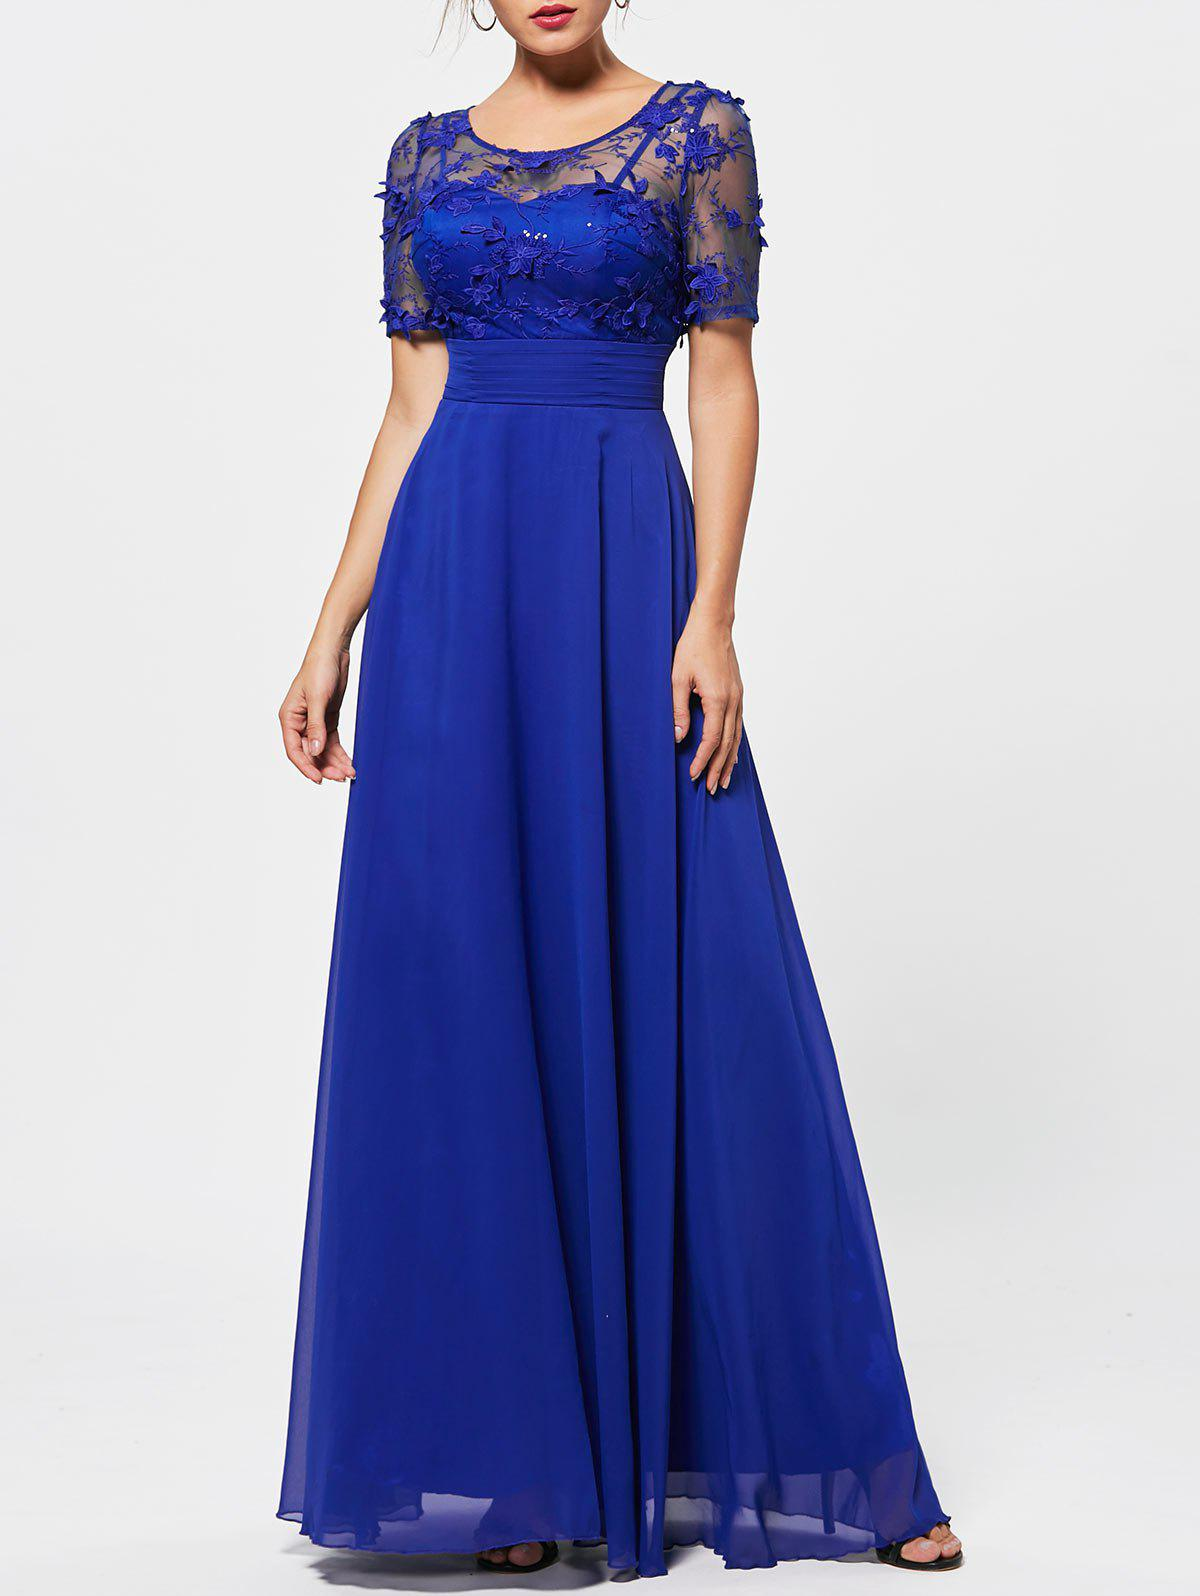 Voir Thru Floral Lace Empire Waist Evening Dress - Bleu L